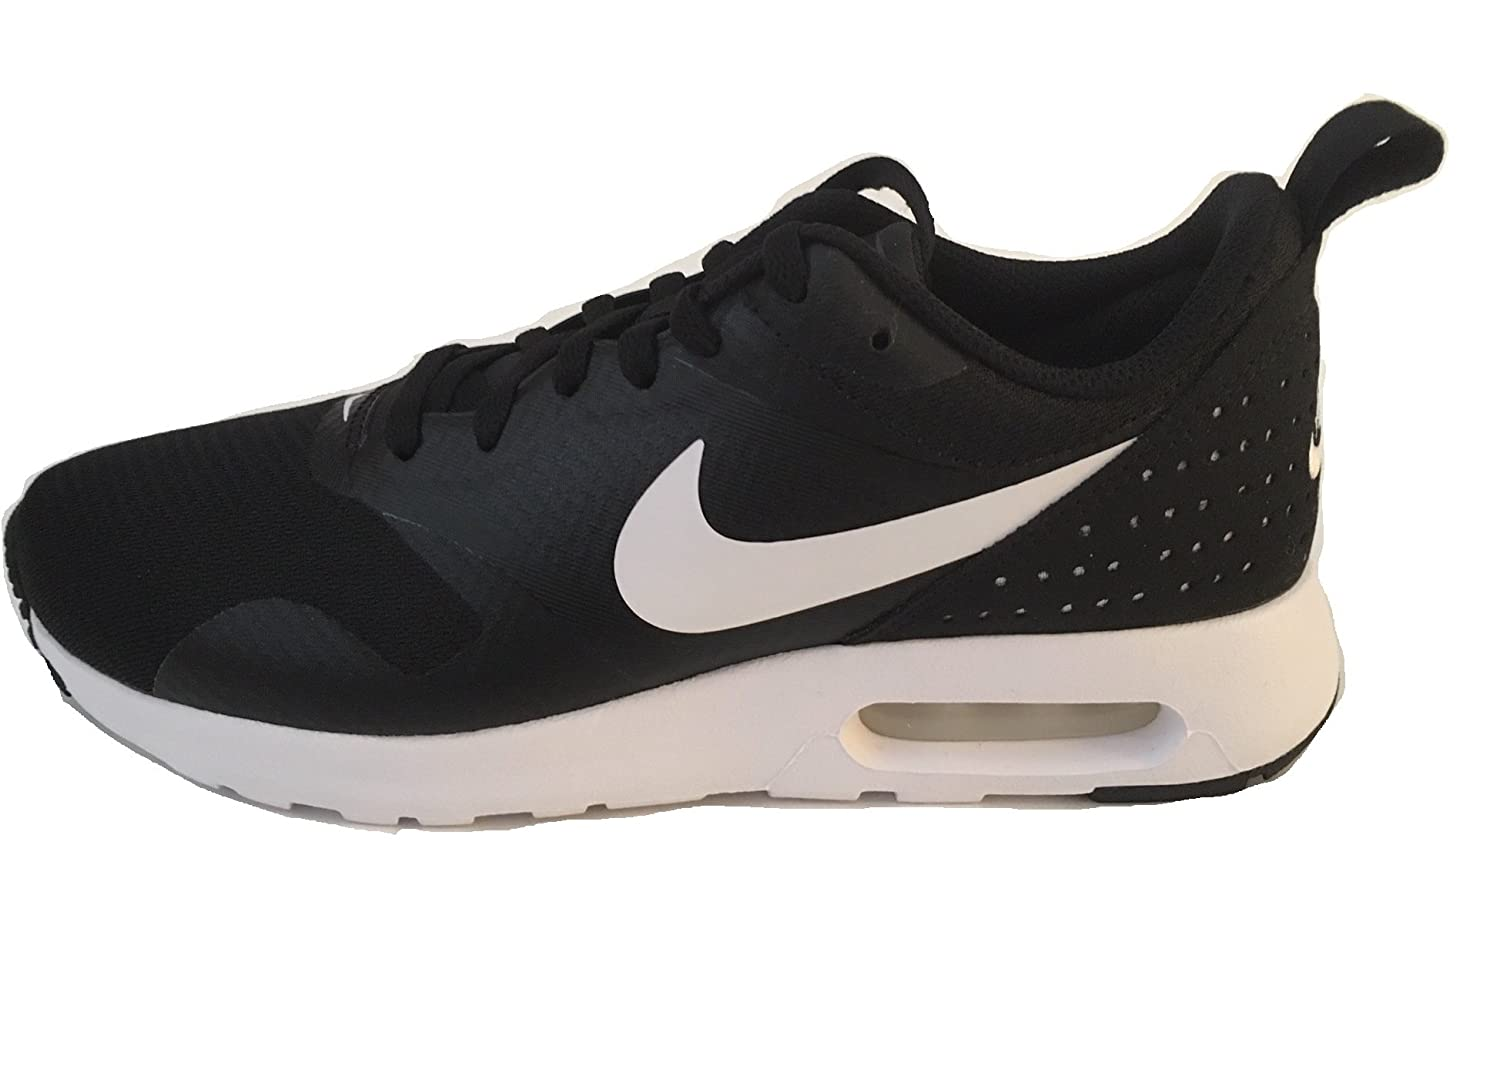 sale retailer 2a4db 68c0d Amazon.com   Nike Women s Air Max Tavas Running Shoes Black White 916791  001 (7.5 B(M) US)   Road Running